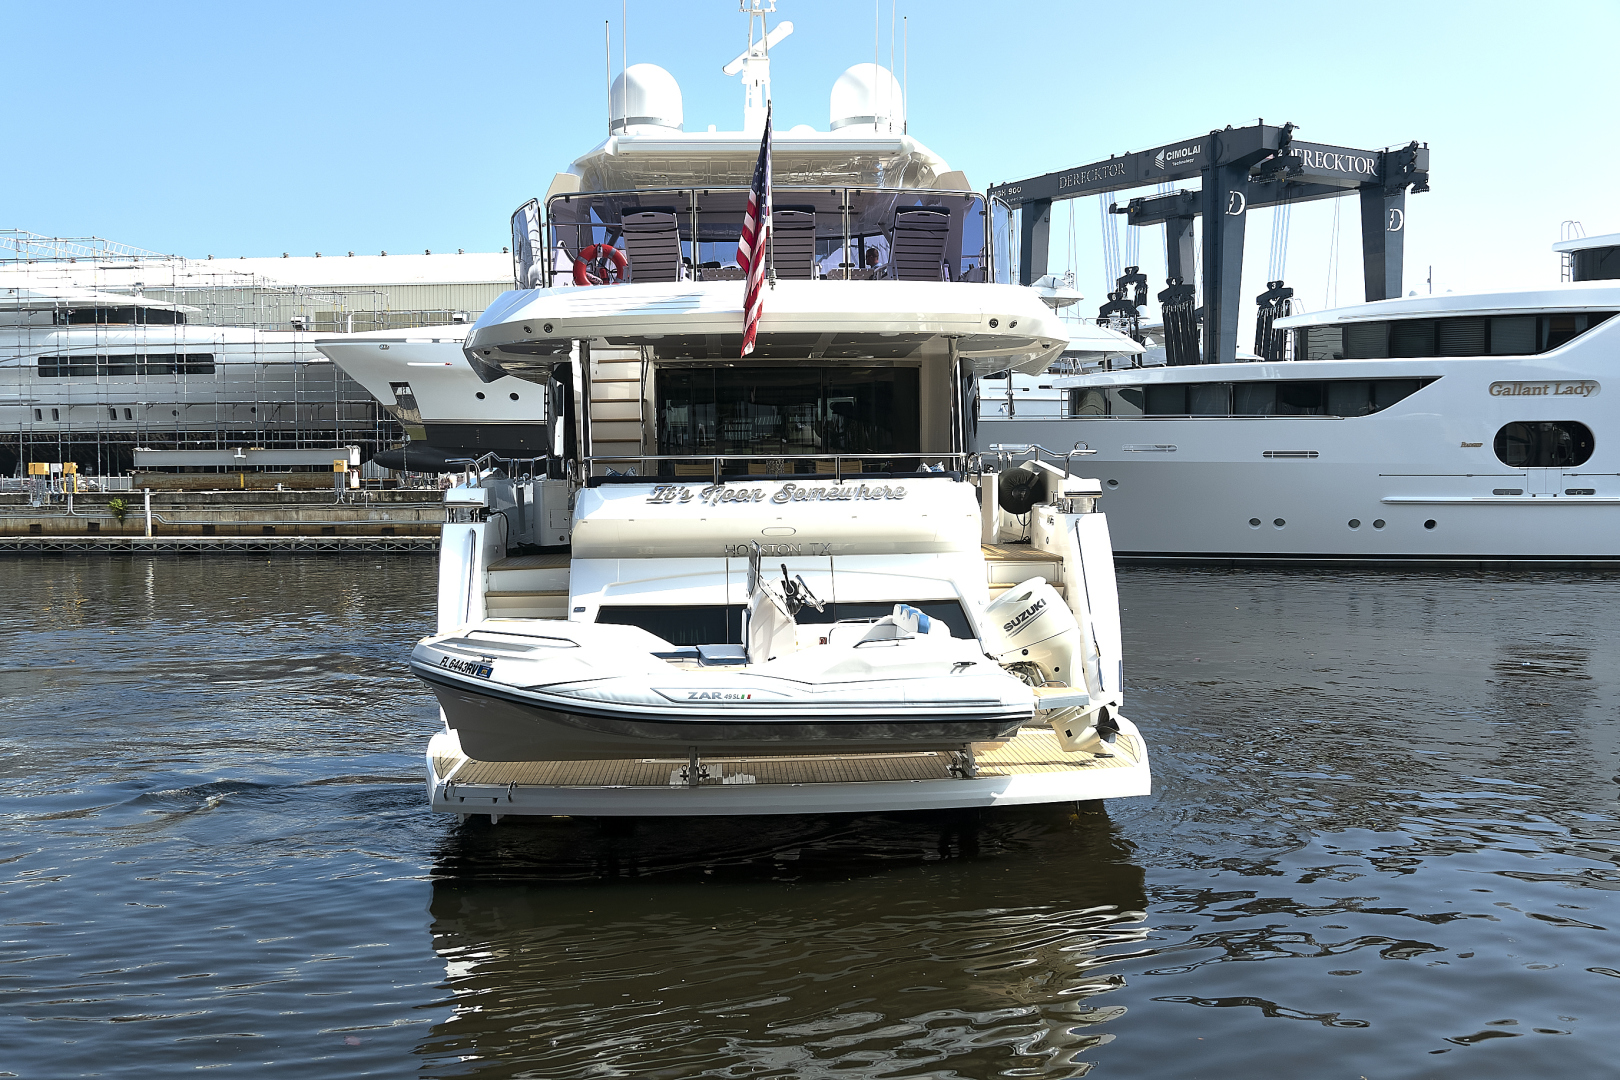 Sunseeker-86 Yacht 2019-Its Noon Somewhere Fort Lauderdale-Florida-United States-1556649 | Thumbnail